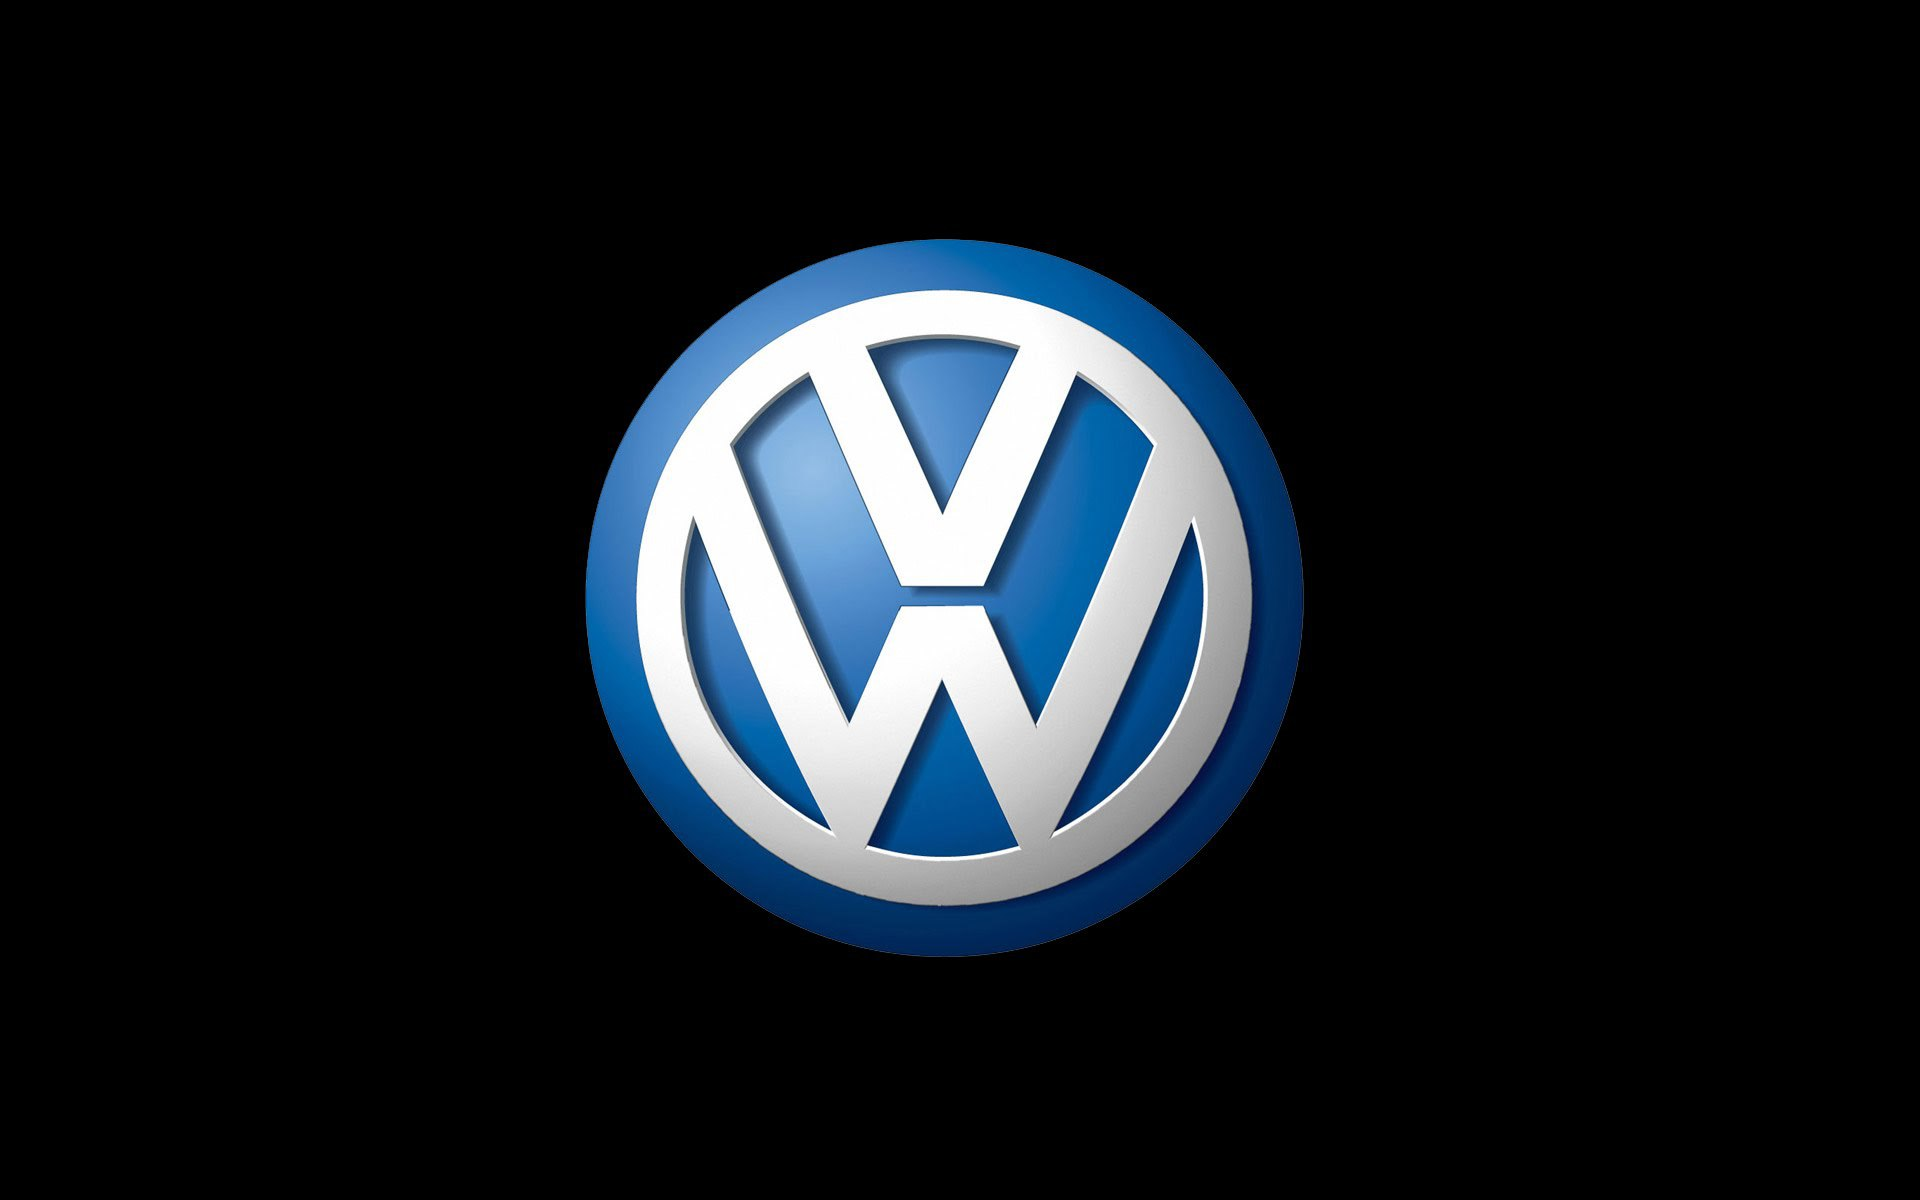 Marketing Strategy of Volkswagen